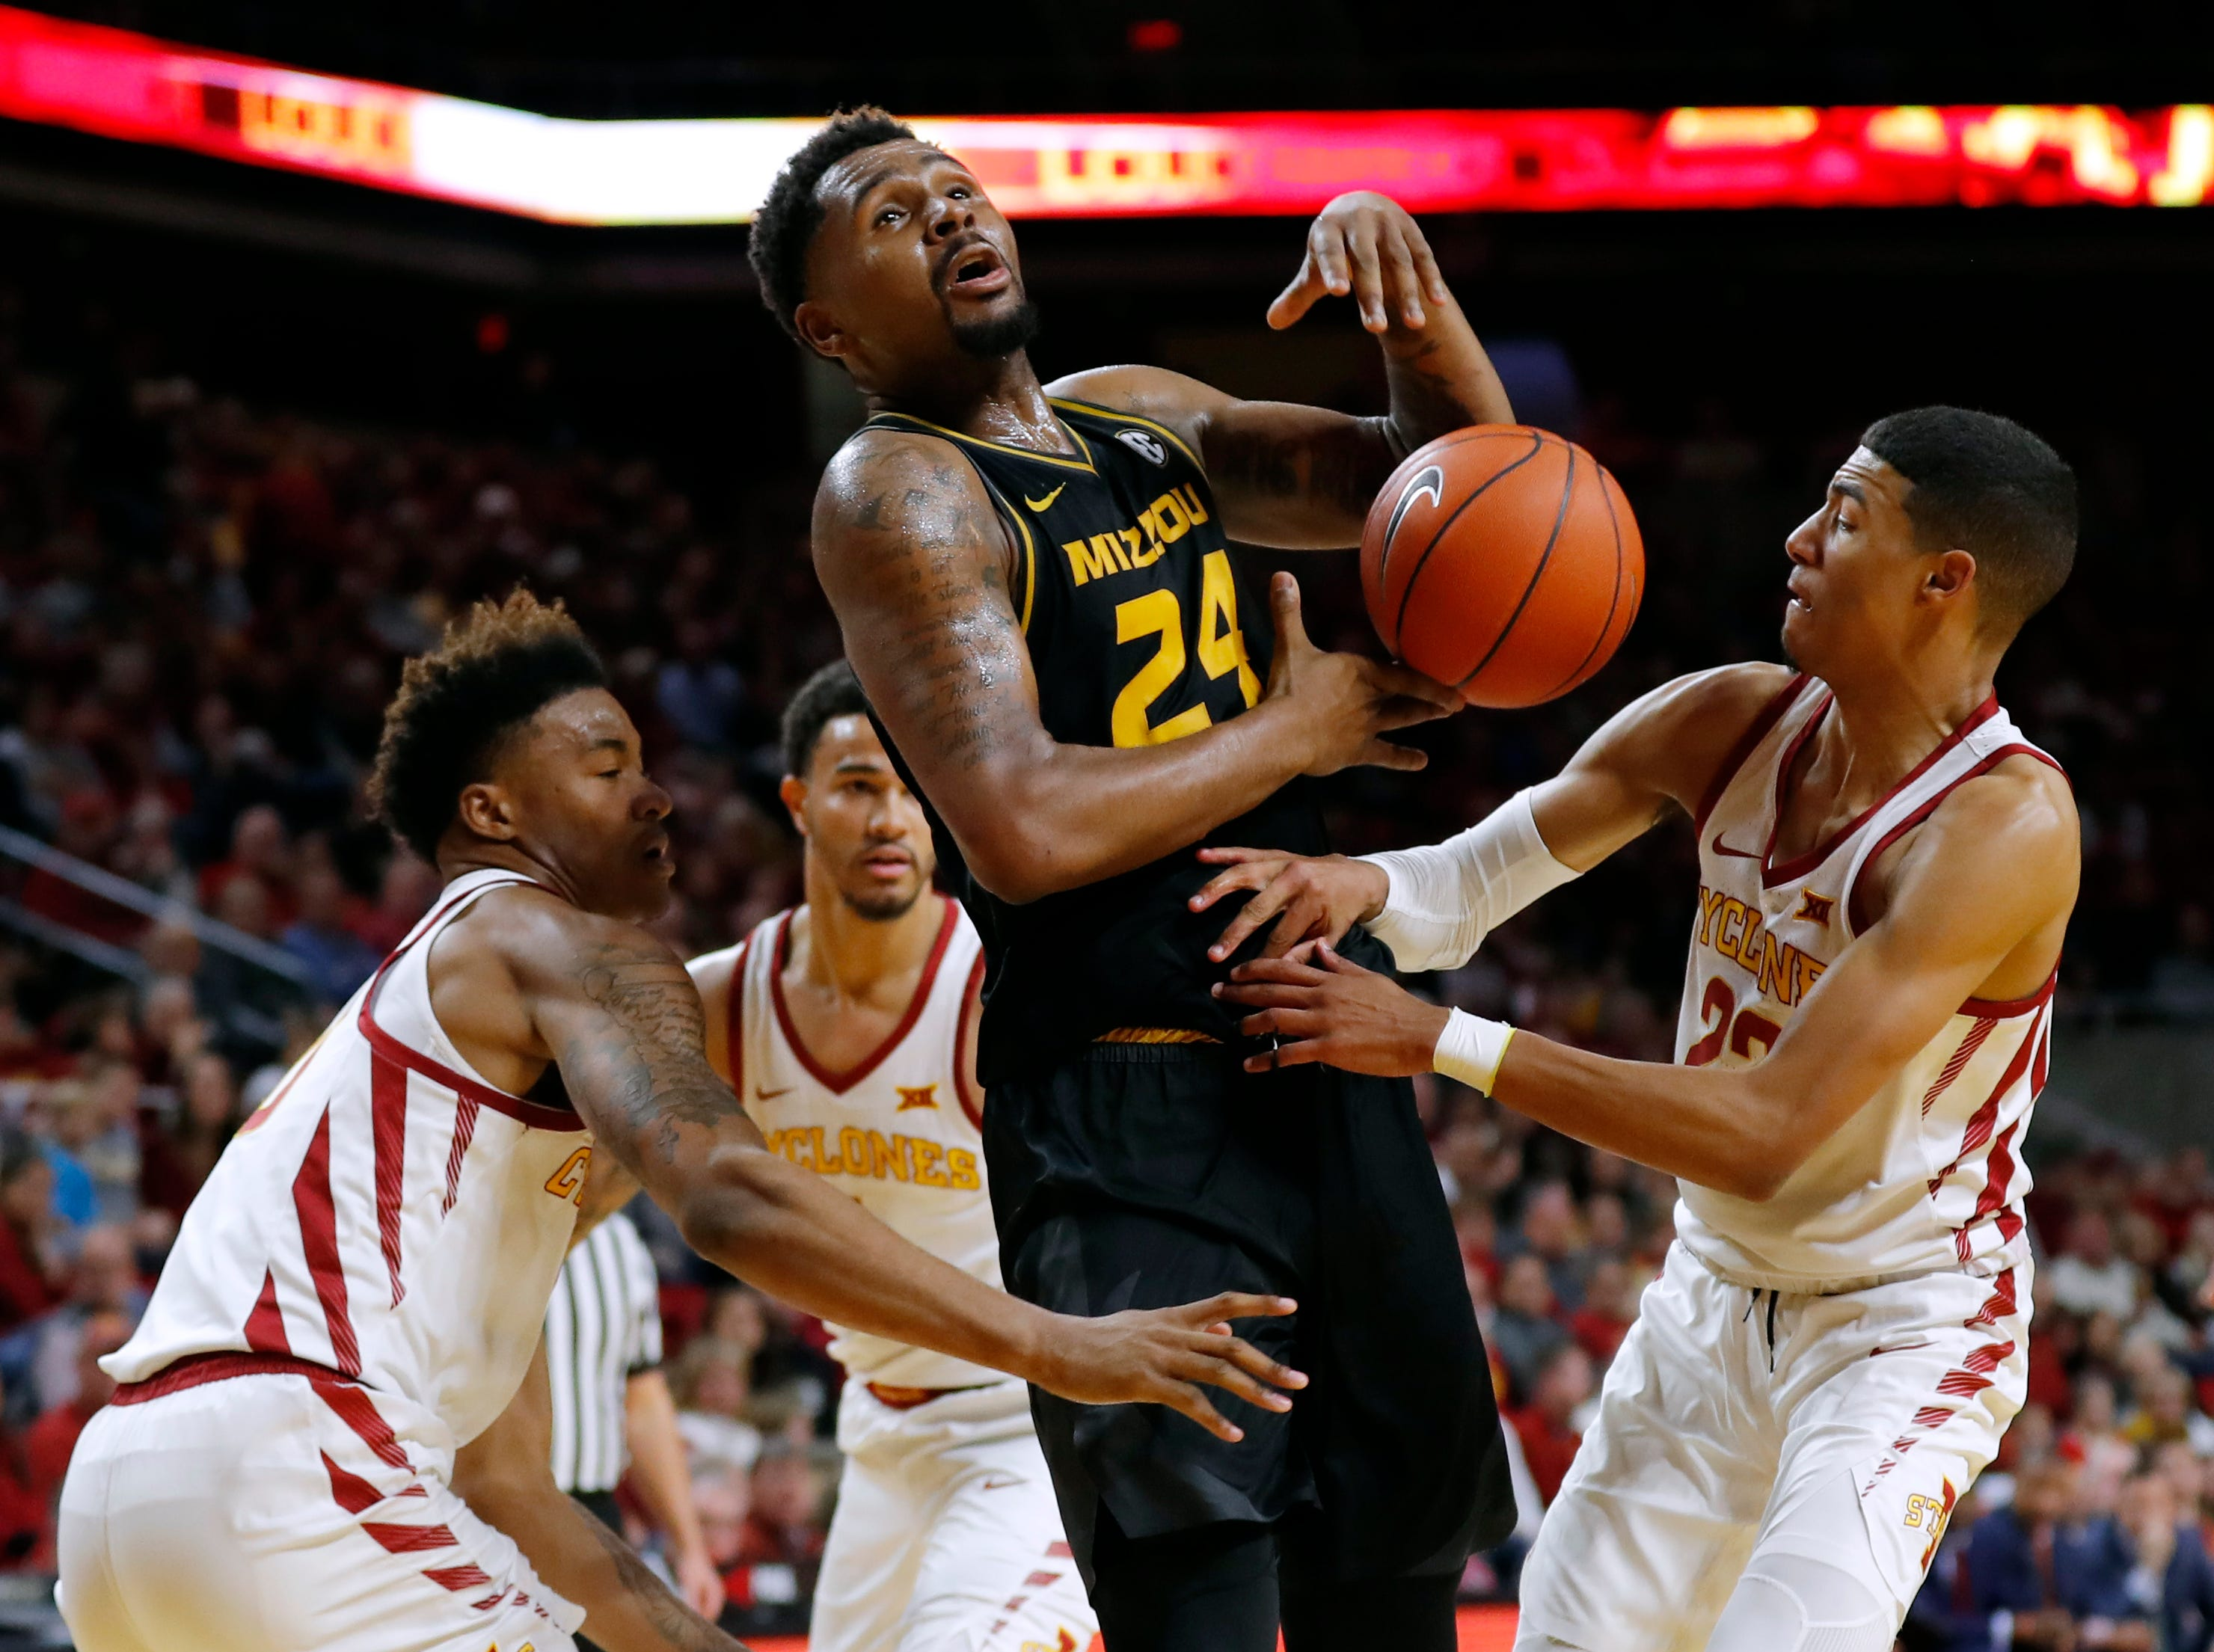 Missouri forward Kevin Puryear, center, is fouled while driving to the basket between Iowa State's Zion Griffin, left, and Tyrese Haliburton, right, during the second half of an NCAA college basketball game, Friday, Nov. 9, 2018, in Ames, Iowa.